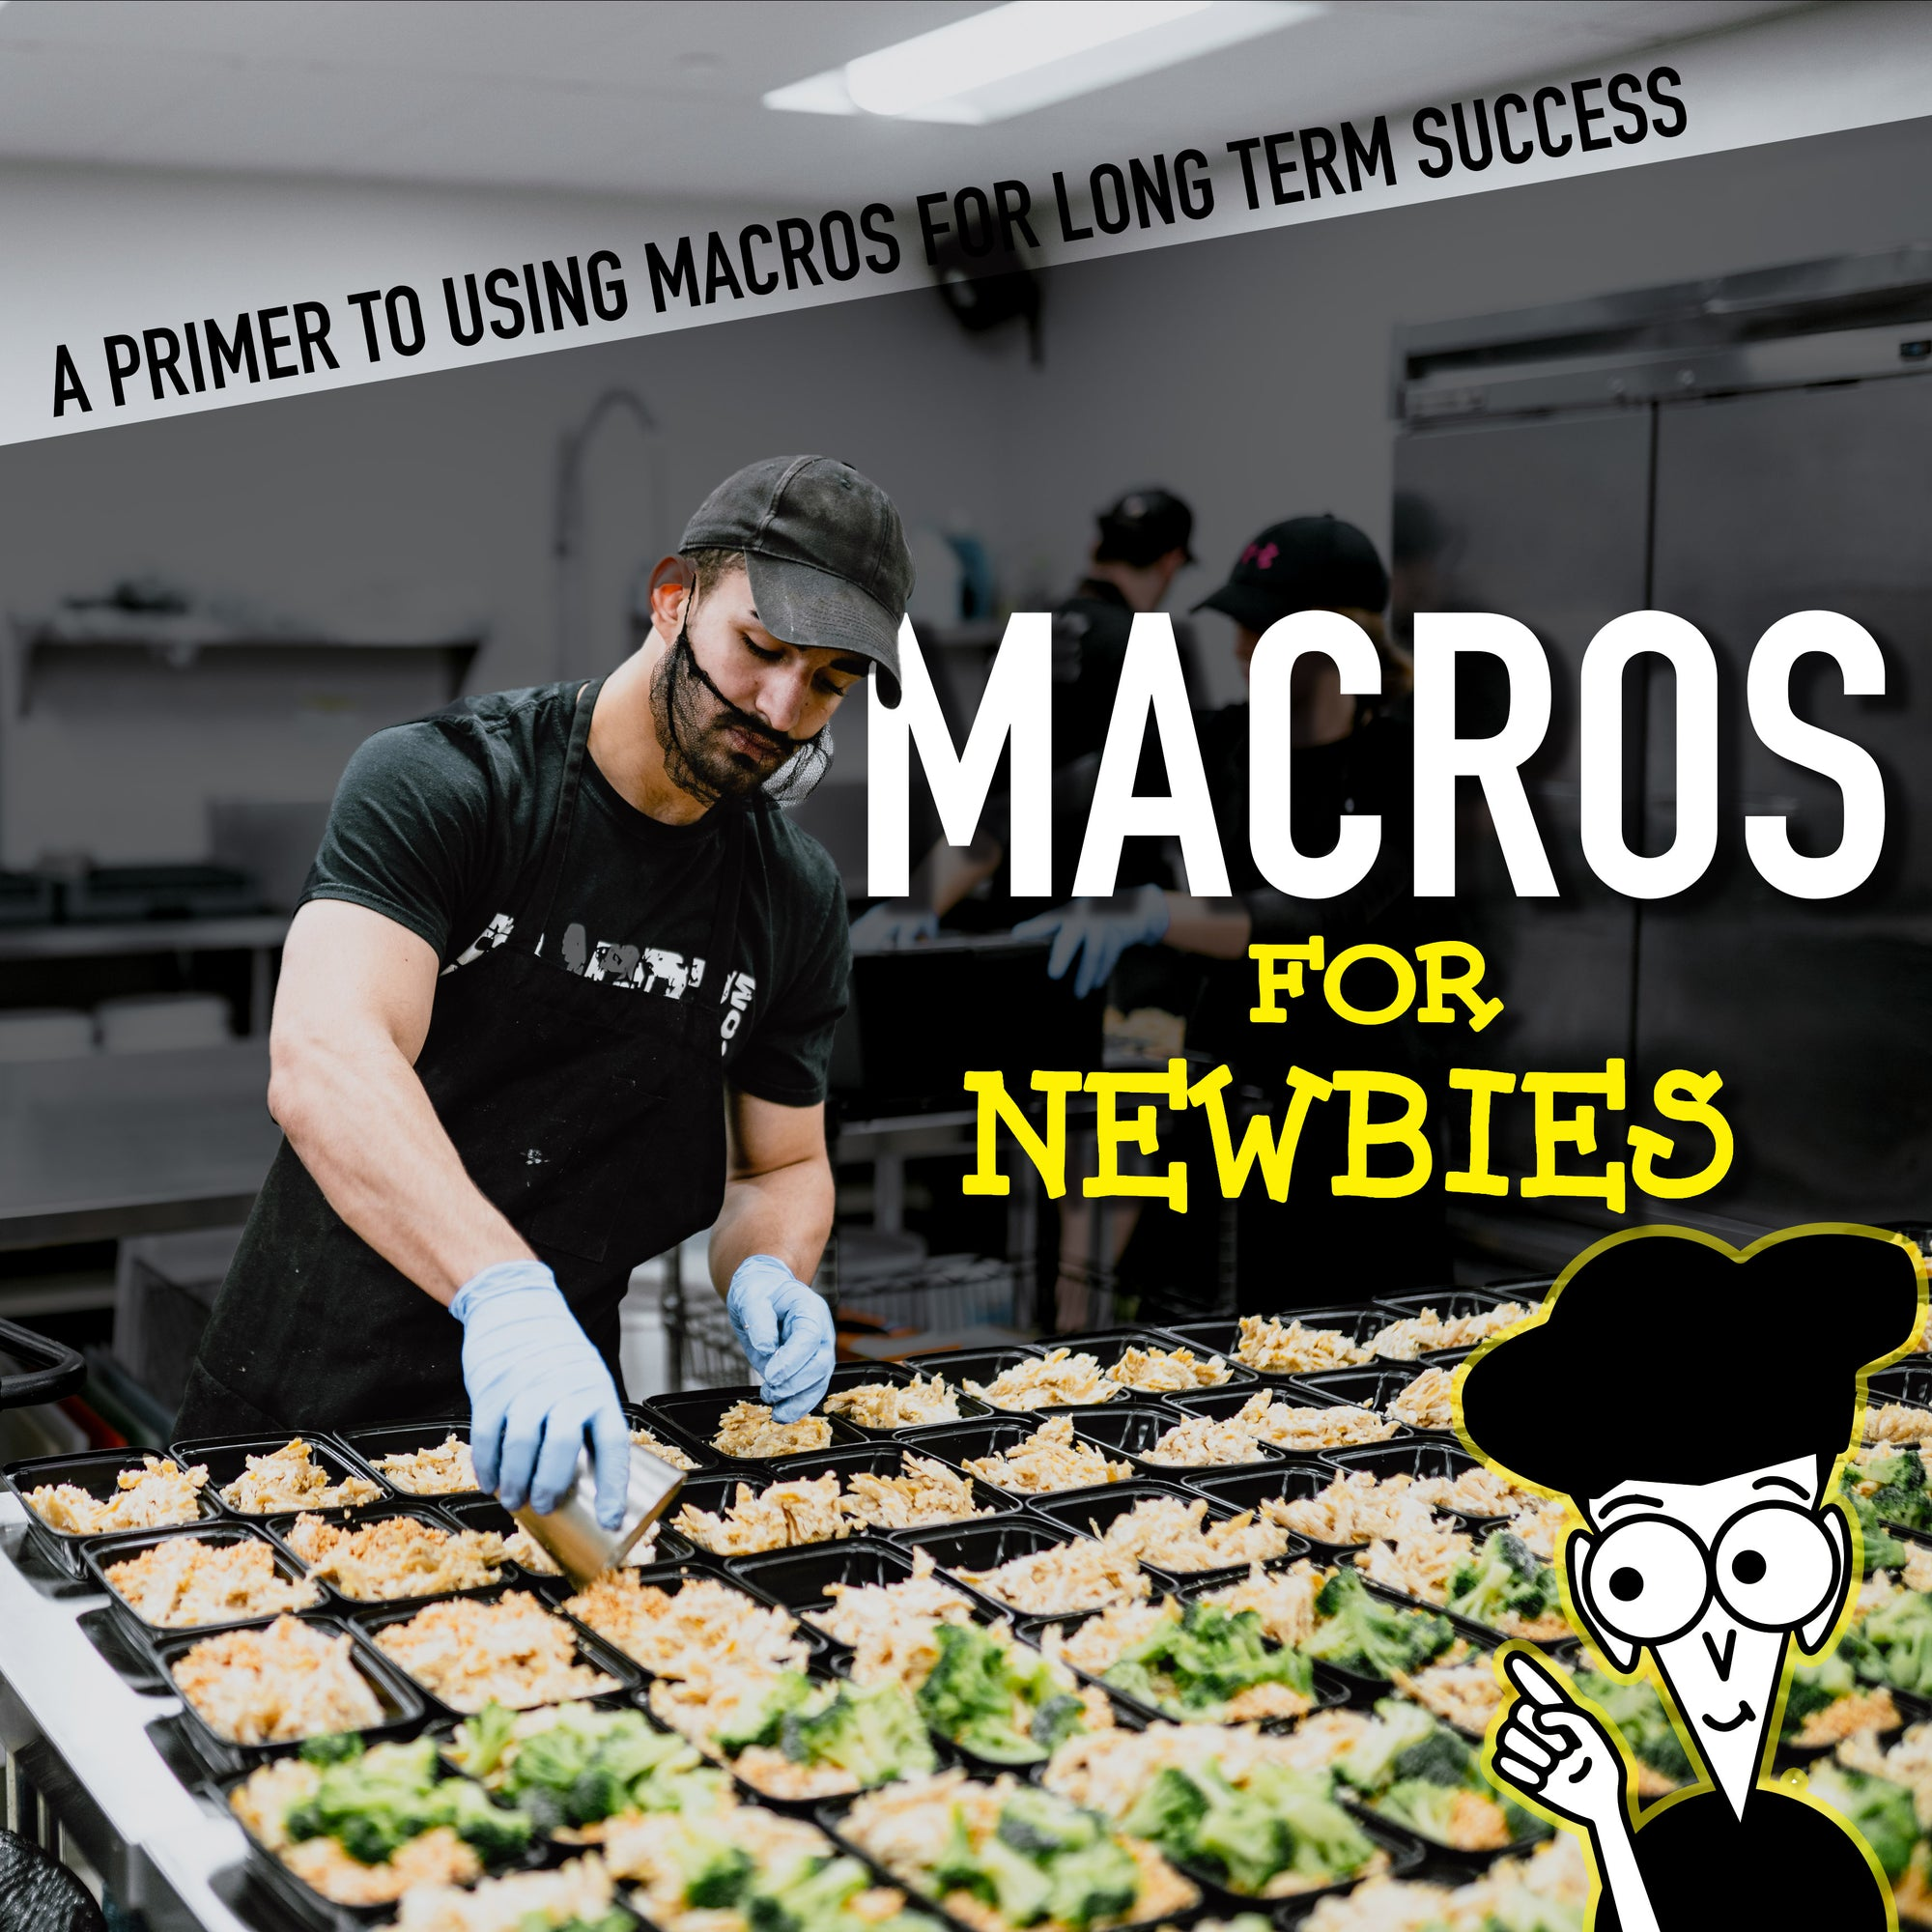 Macros for Newbies: The Importance of Macronutrients for Your Health